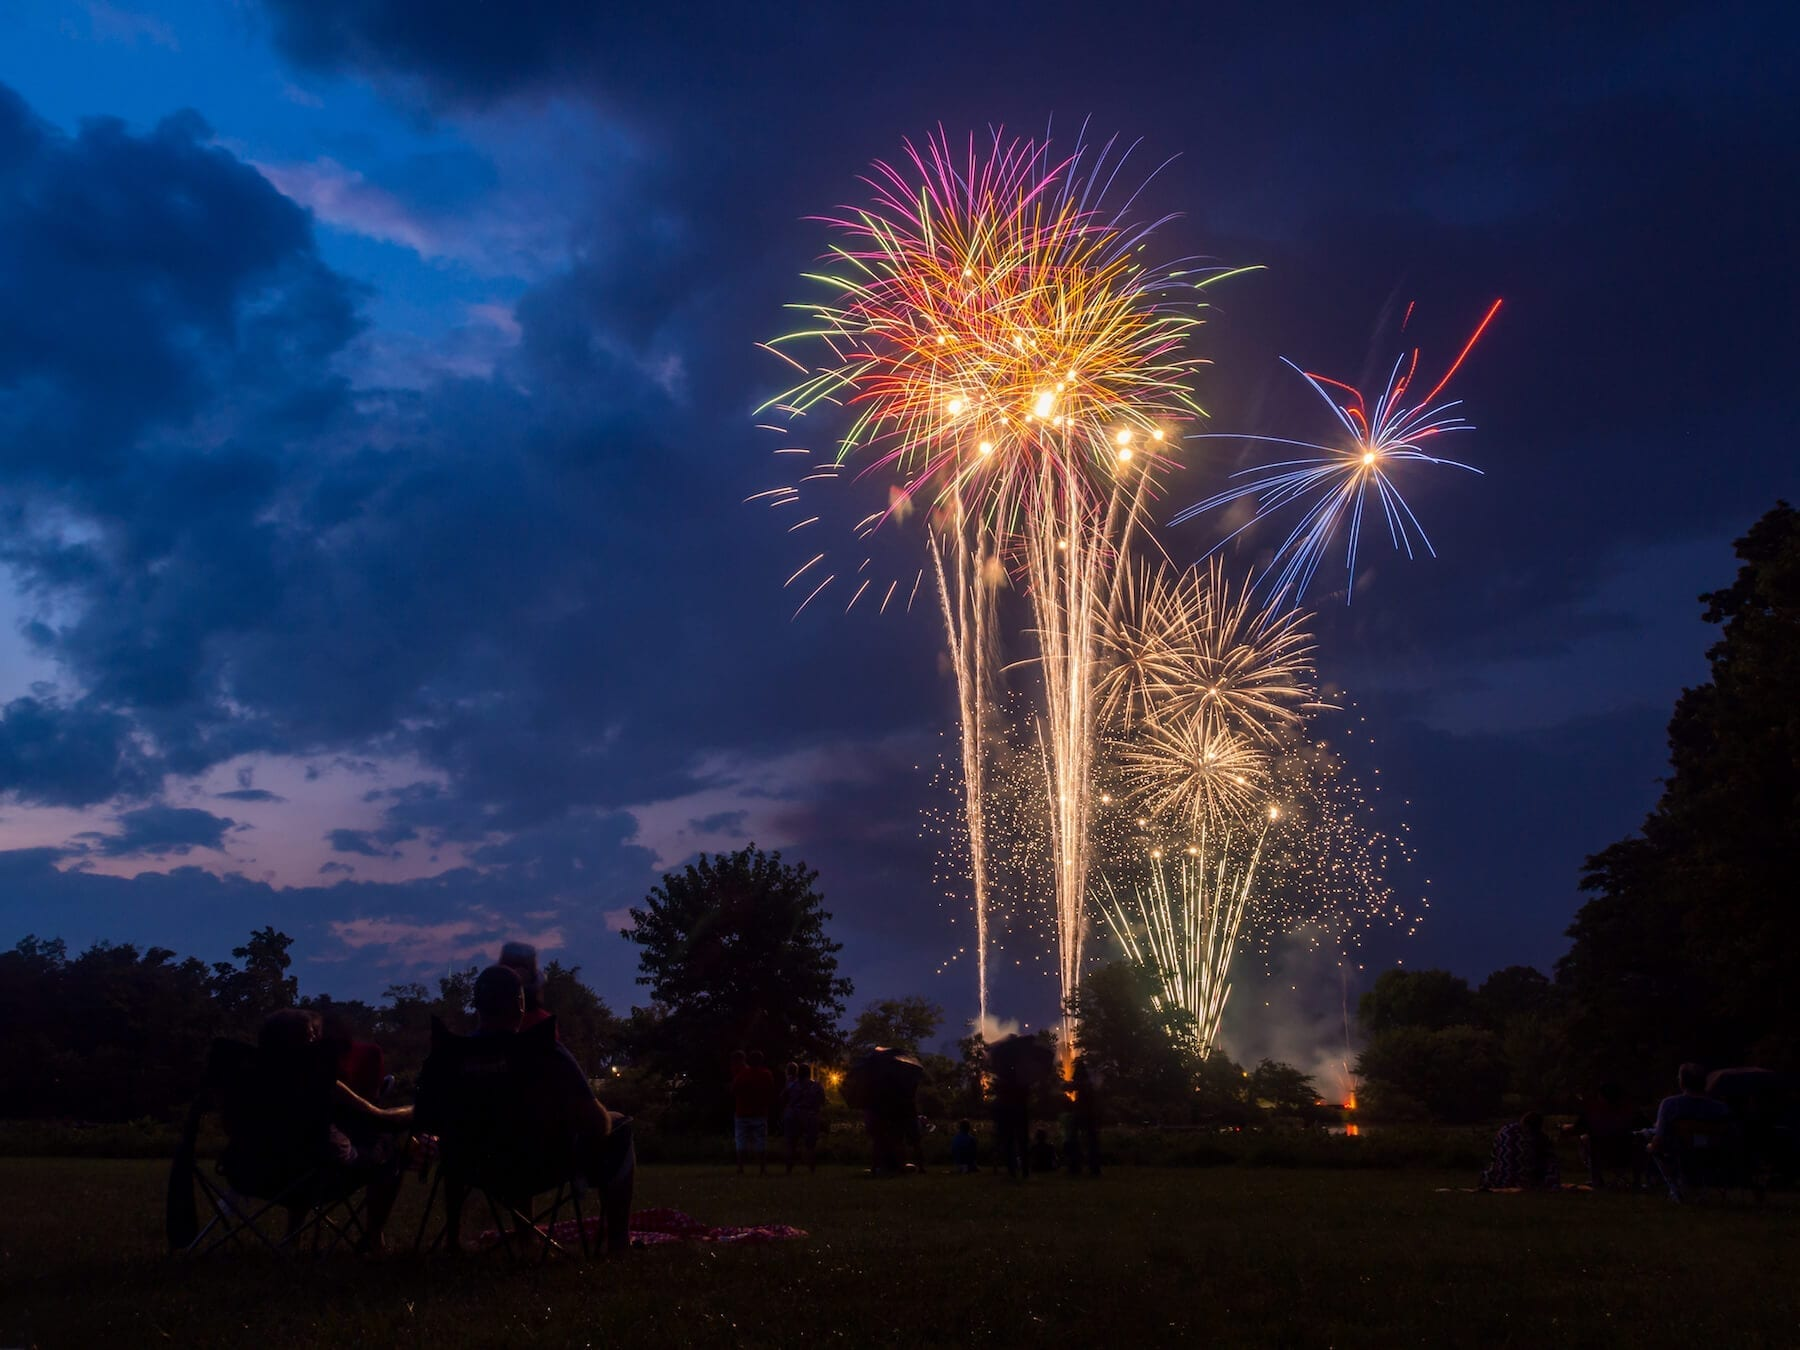 BONUS: Even more fun activities in the Chicago suburbs | July 4th edition